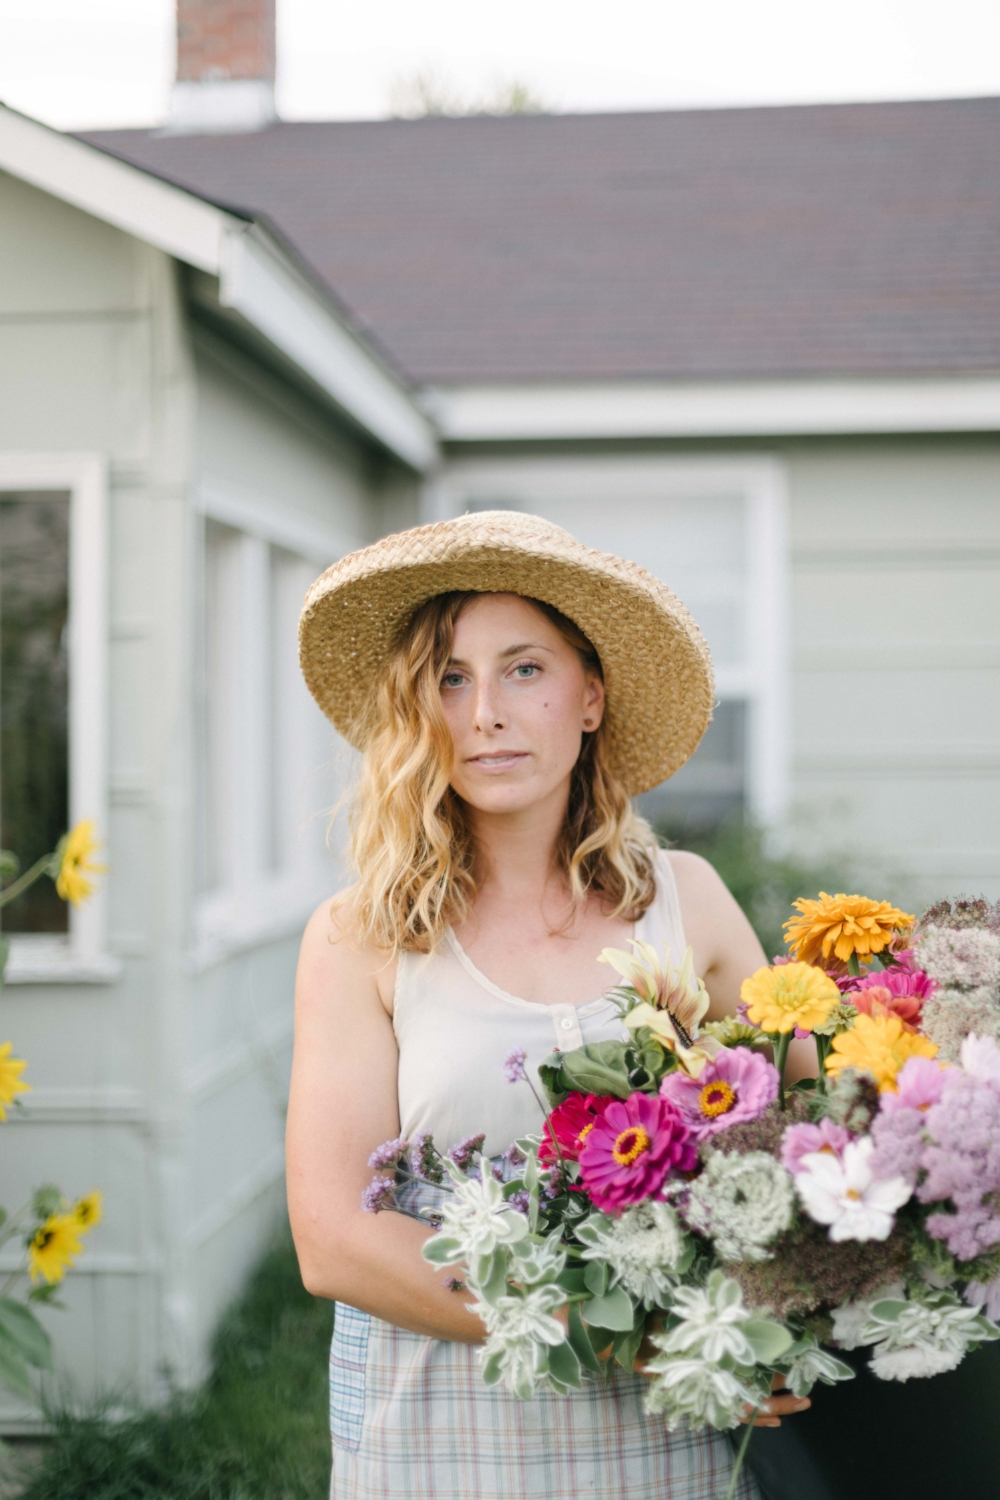 Jimena-Peck-Denver-Lifestyle-Editorial-Photographer-Native-Hill-Farm-Flowers-Portrait